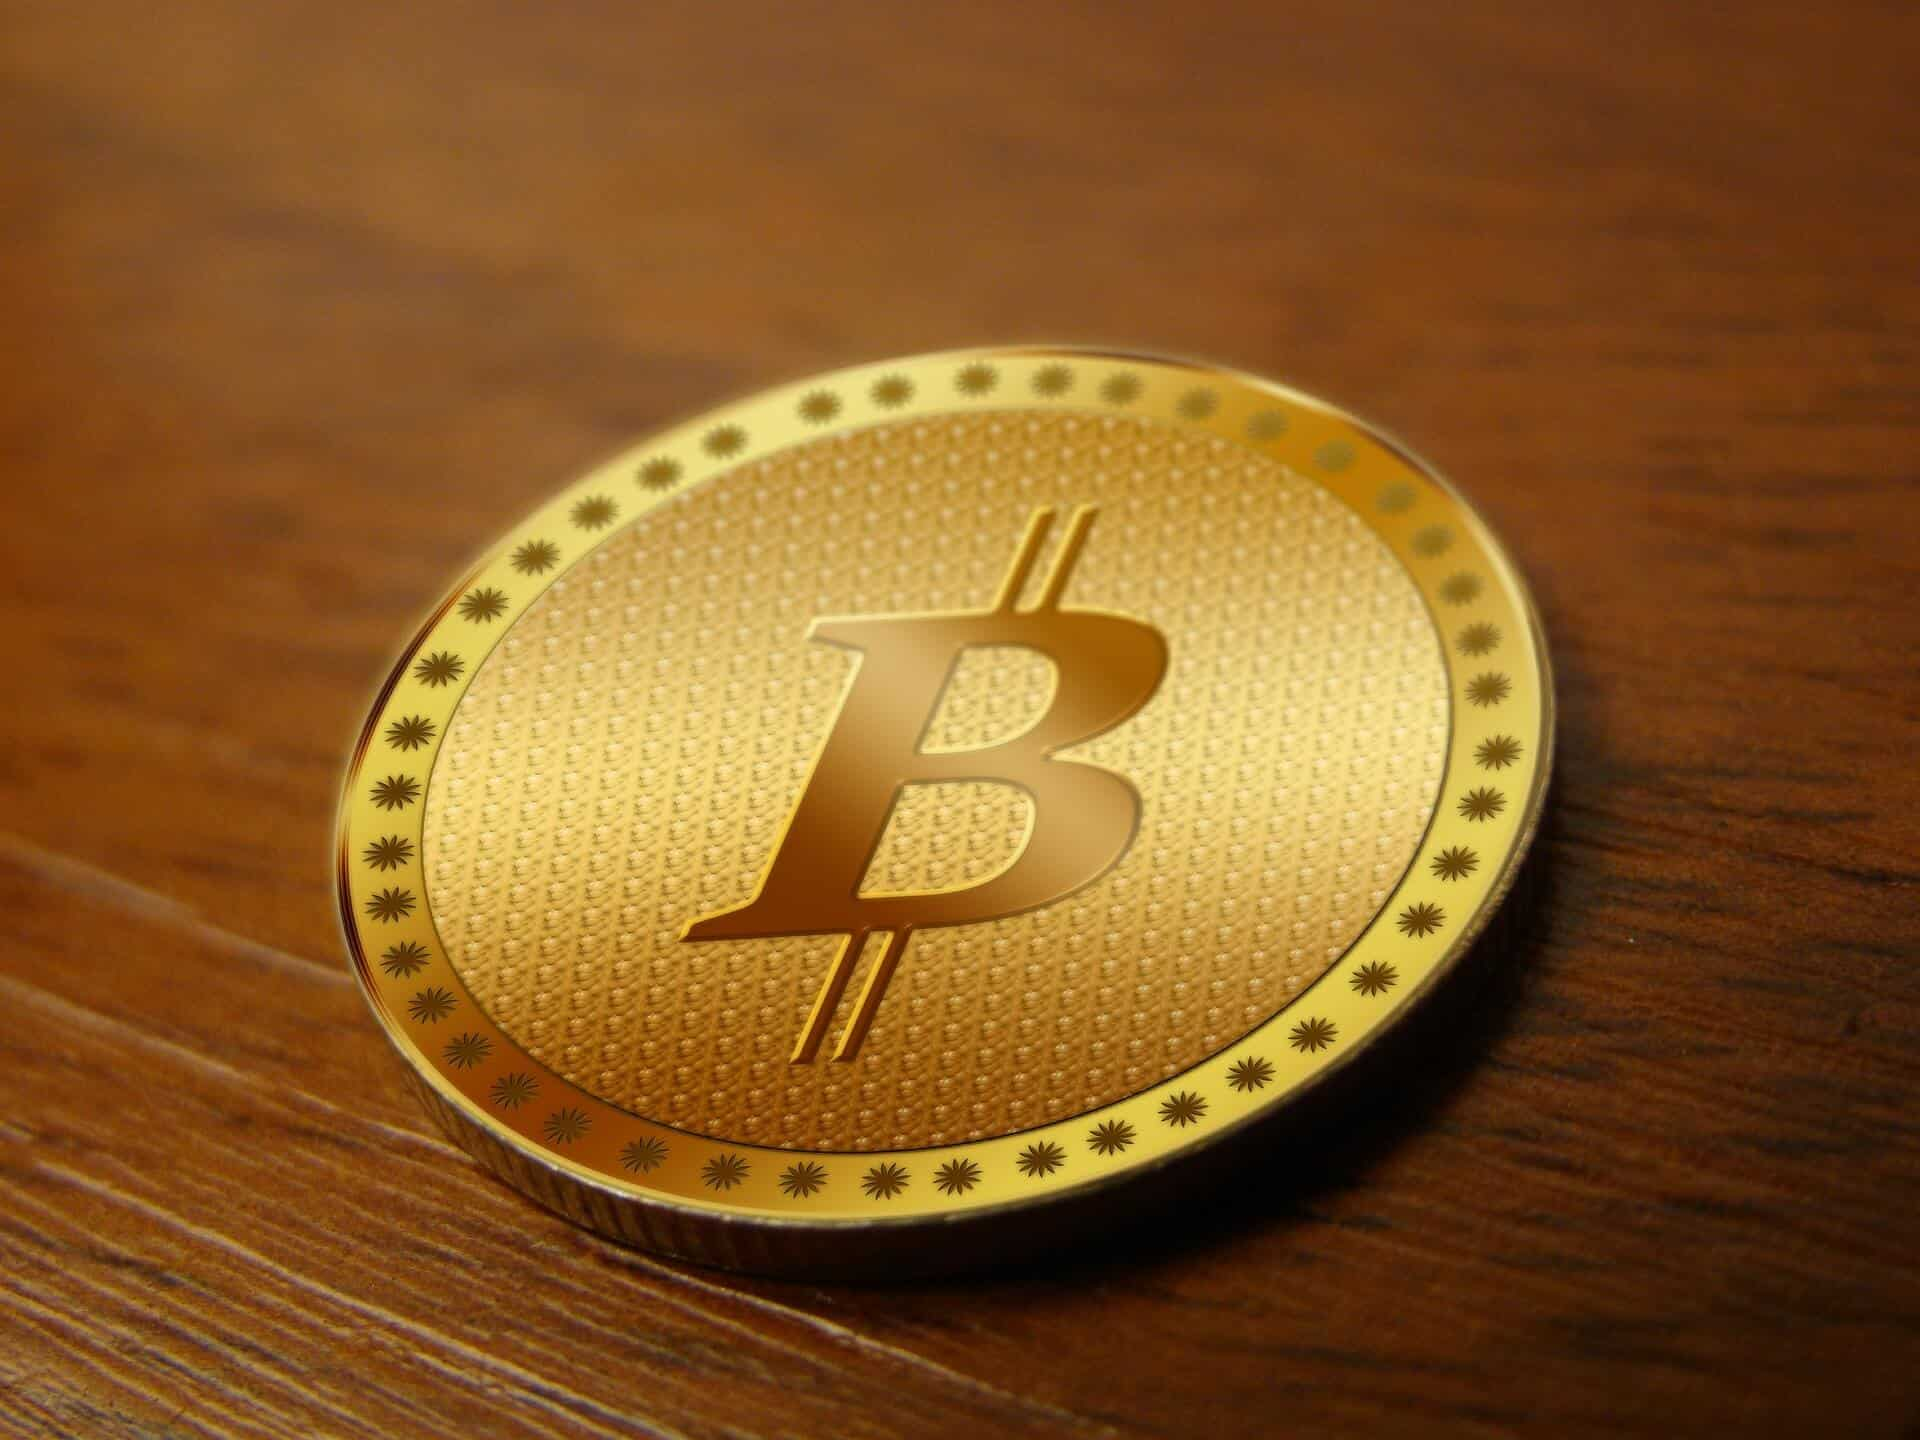 Bitcoin Price Growth Has No Effect on Crypto App Growth